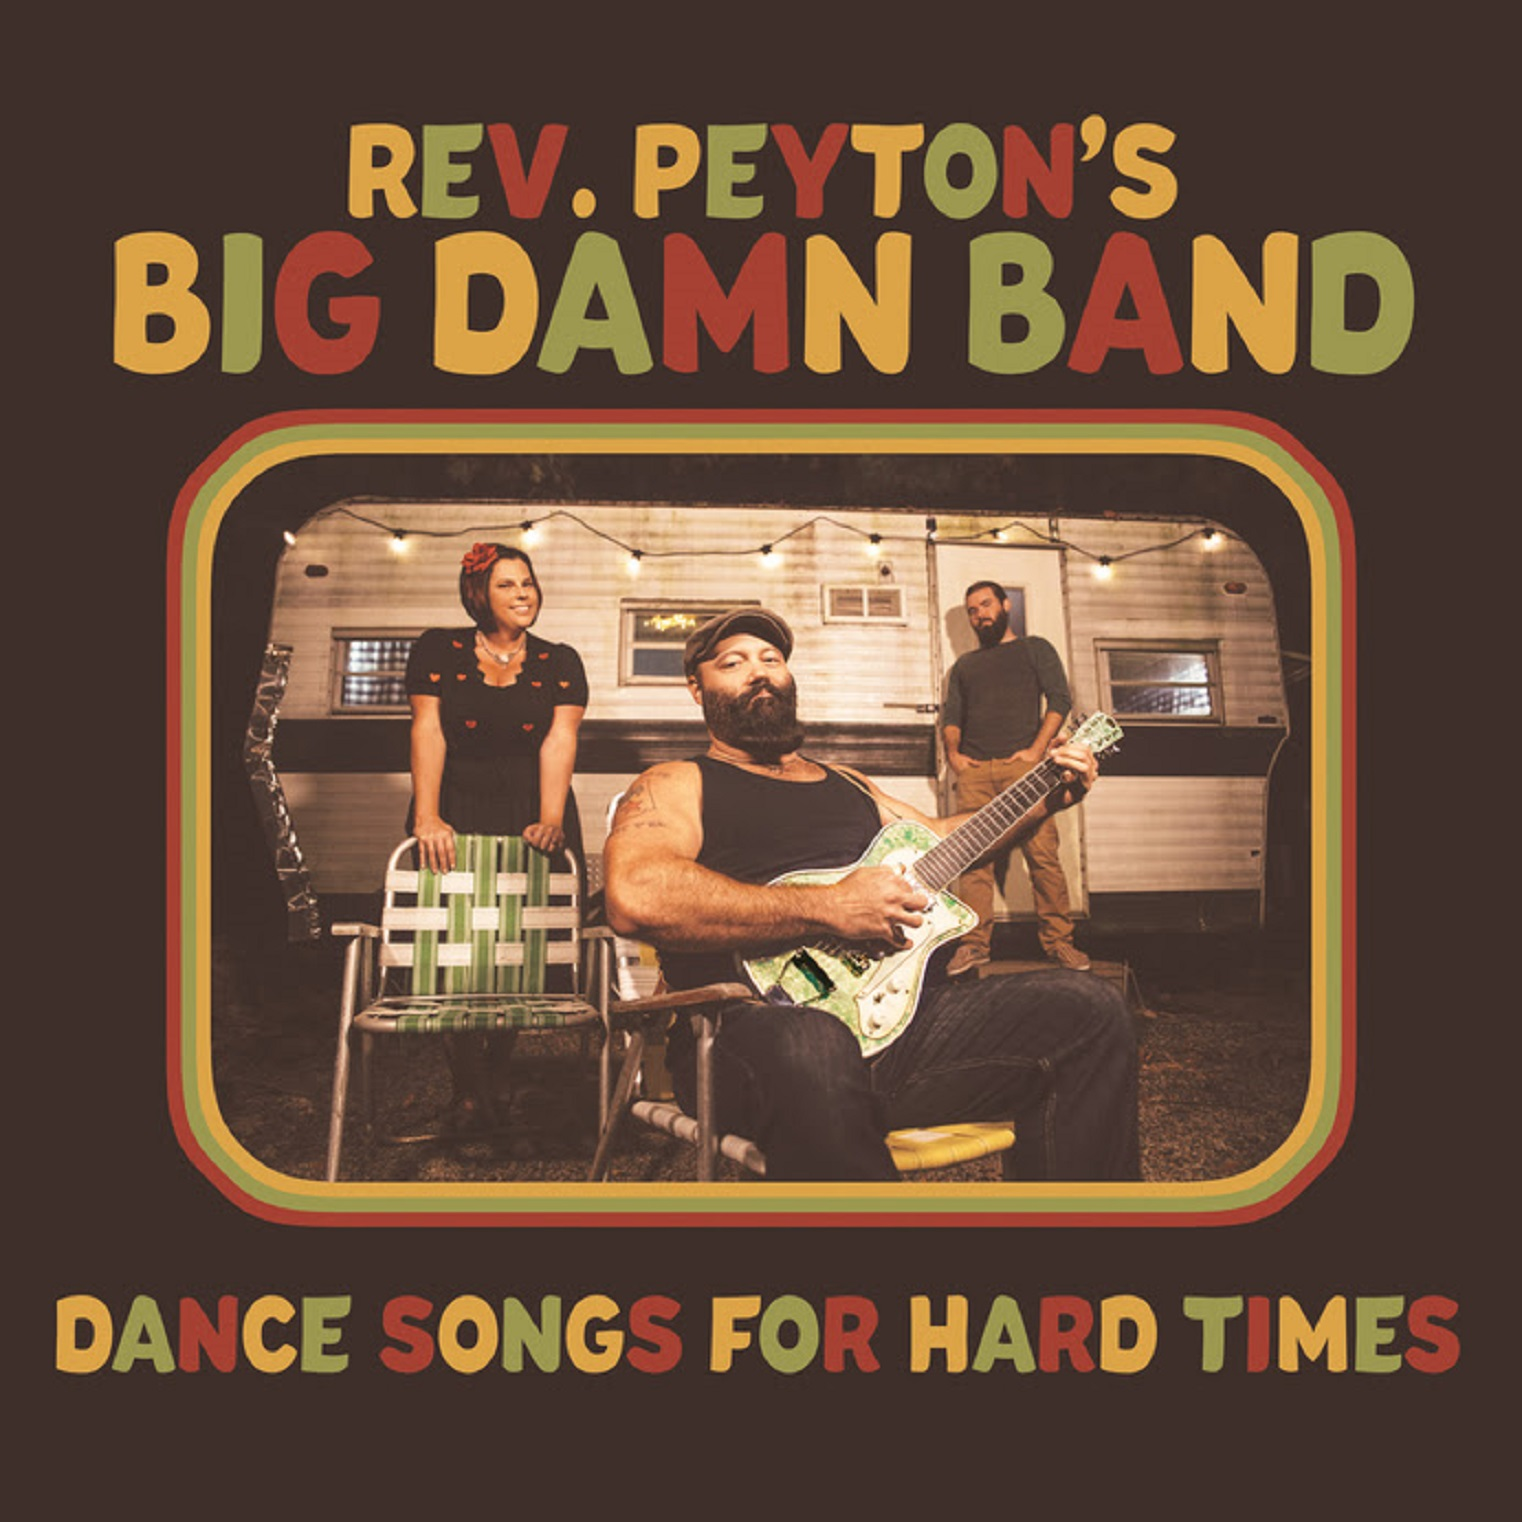 REVEREND PEYTON'S BIG DAMN BAND FINDS REDEMPTION IN ITS DARKEST HOUR WITH NEW ALBUM